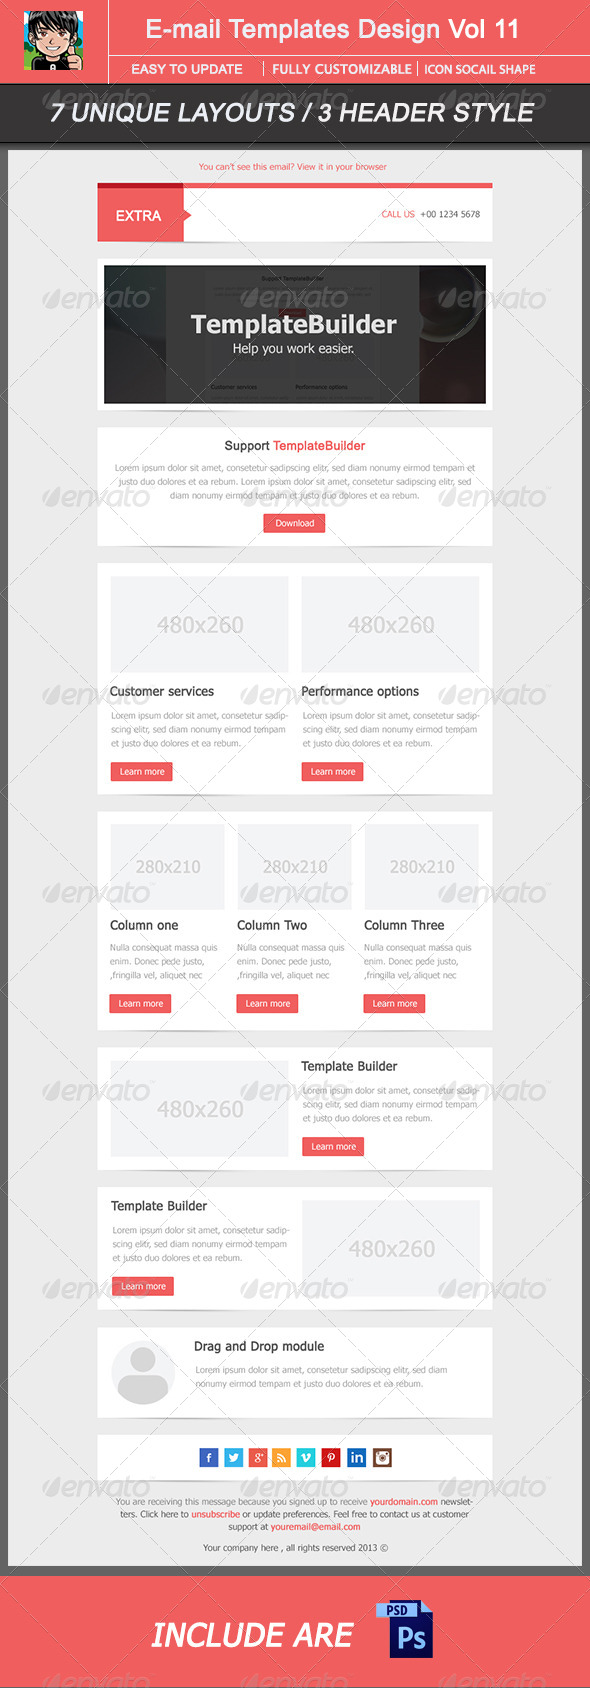 GraphicRiver Extra Email Template Design Vol 12 5876205